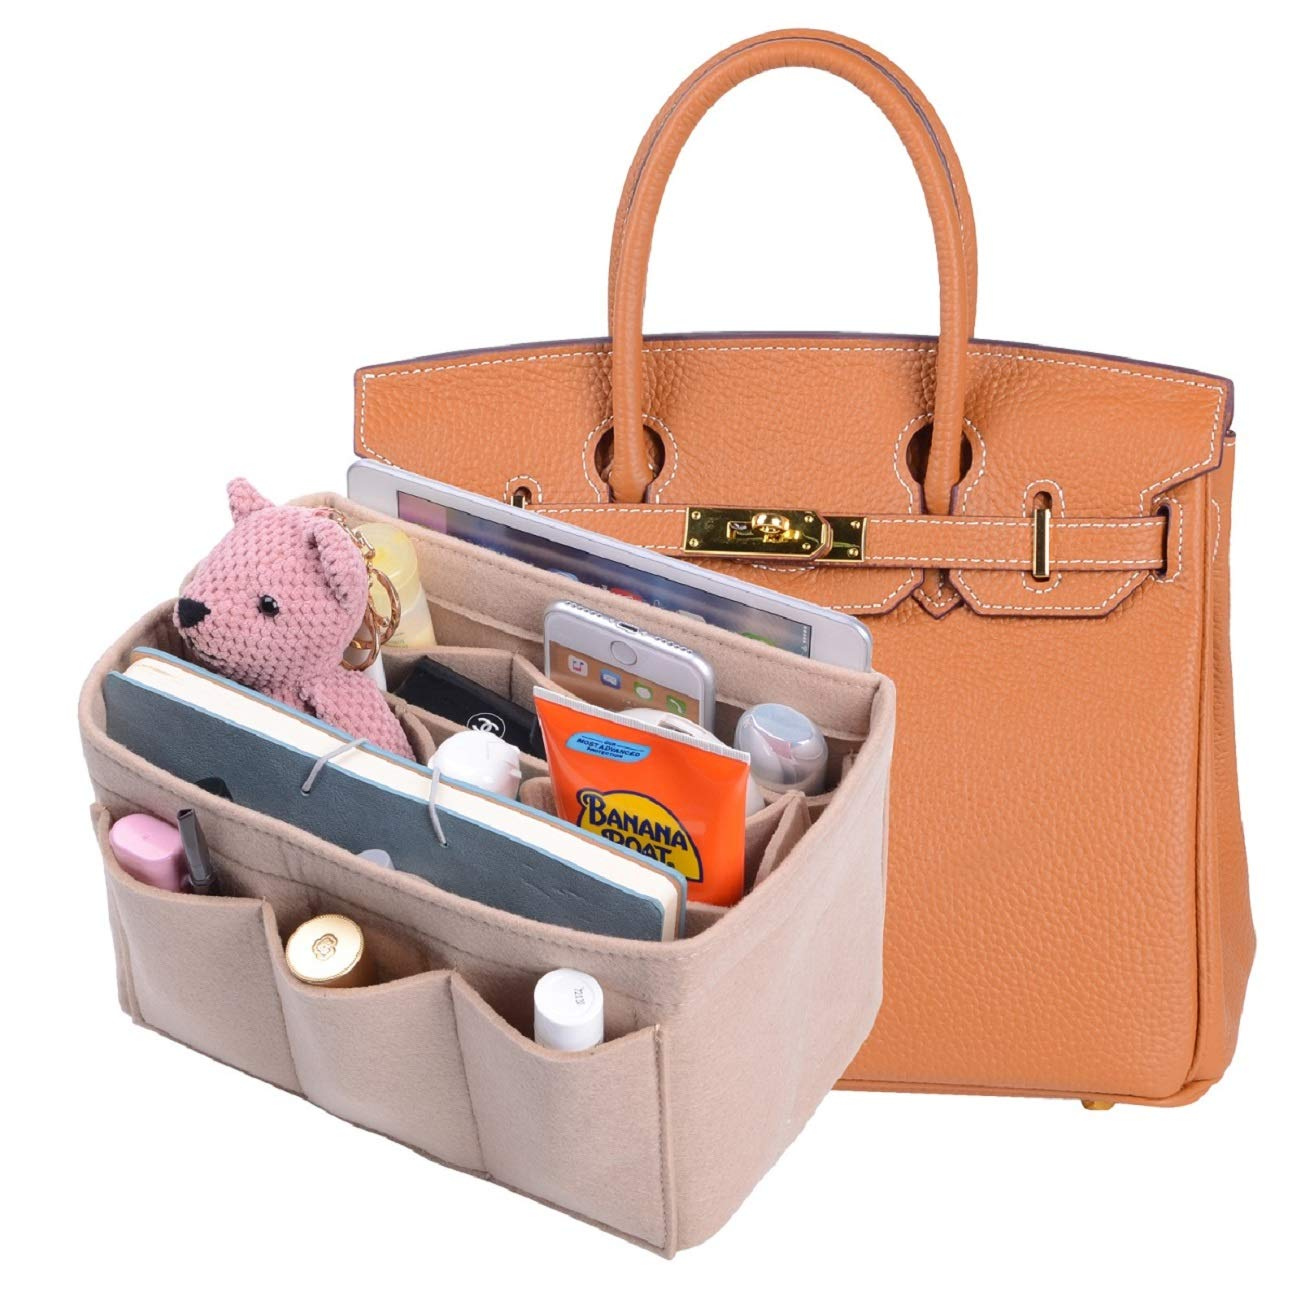 Felt Insert Purse Organizer New Design Bag Organizer With Sewn Bottom Insert Bag In Bag Organizer For Hermes Birkin30 (Beige)